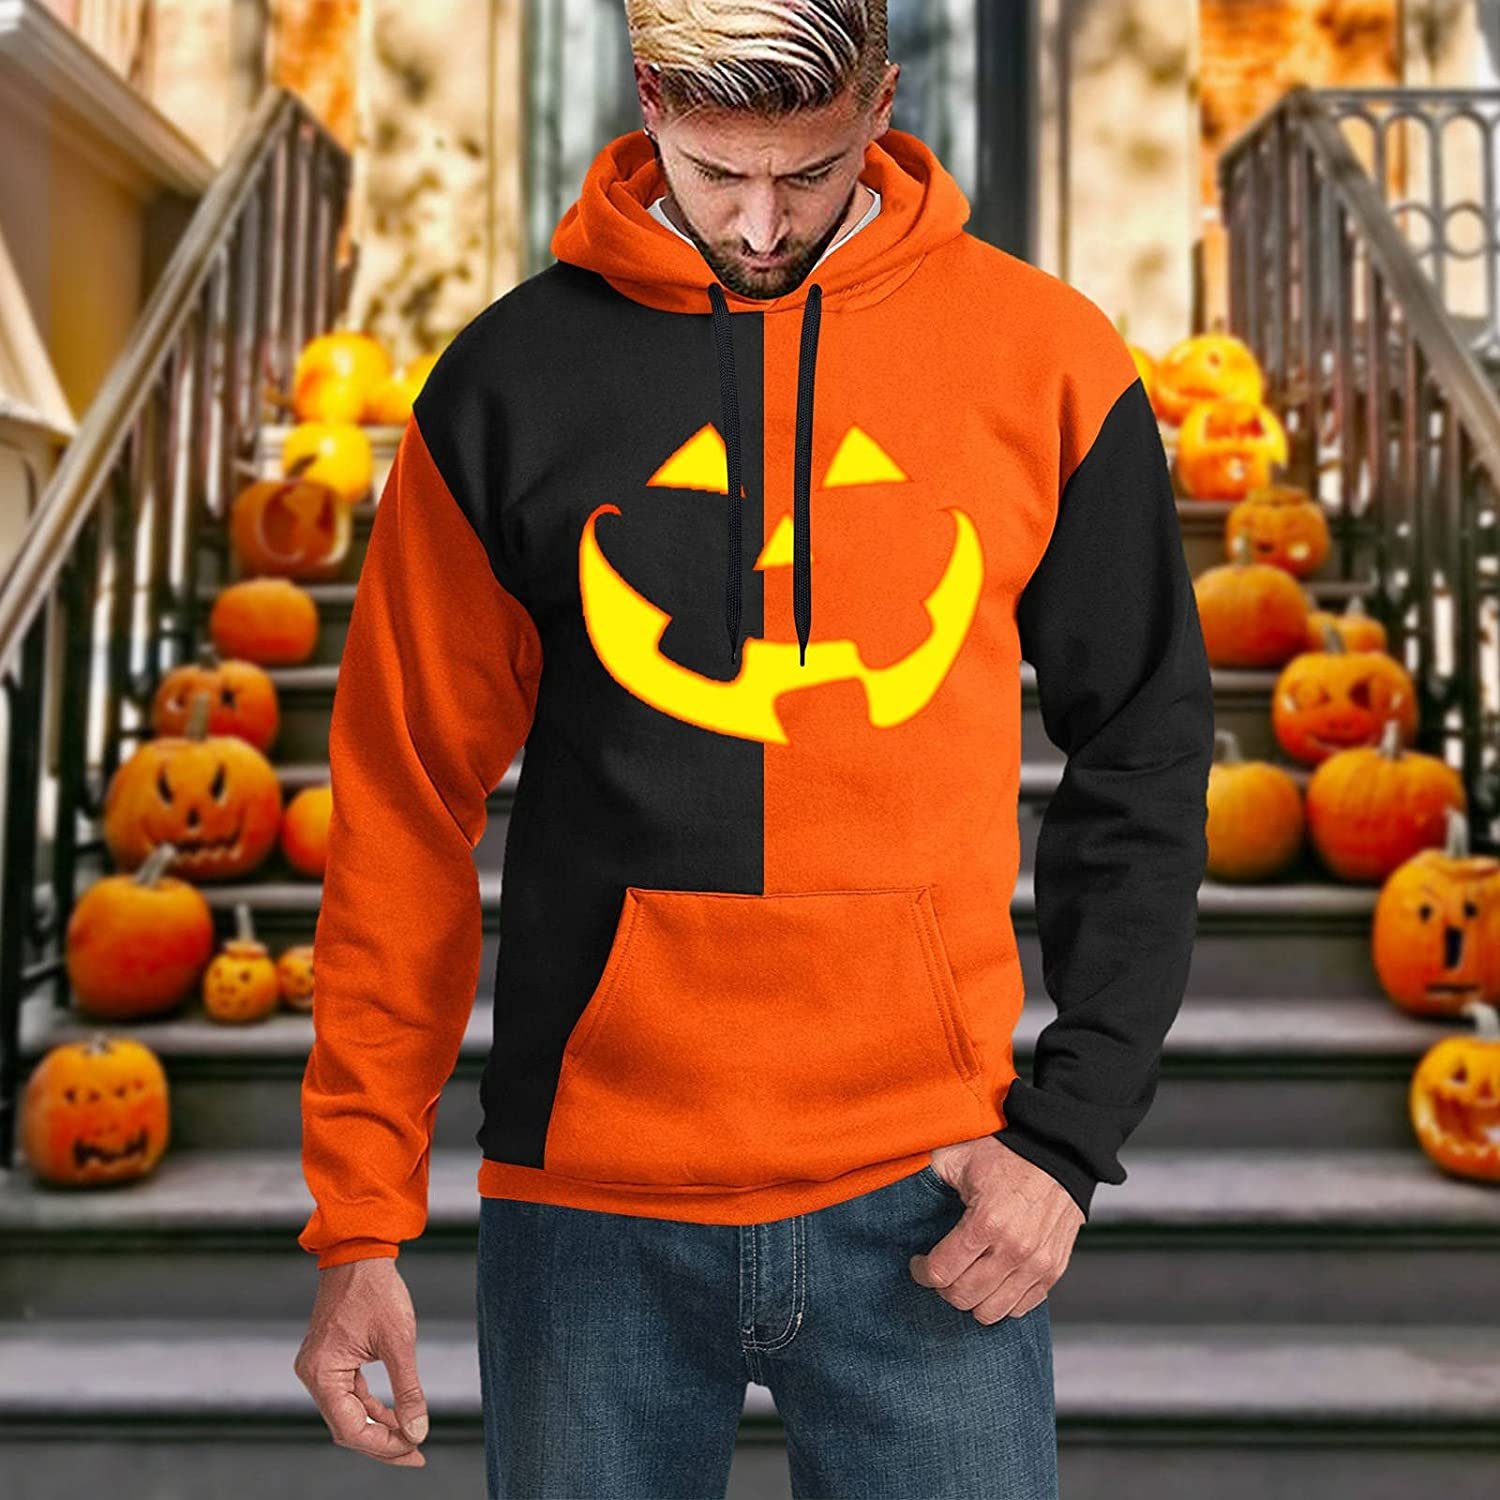 XXBR Hoodies for Mens, 3D Halloween Pumpkin Jack-o-Lantern Print Pullover Loose Casual Party Novelty Hooded Sweatshirts